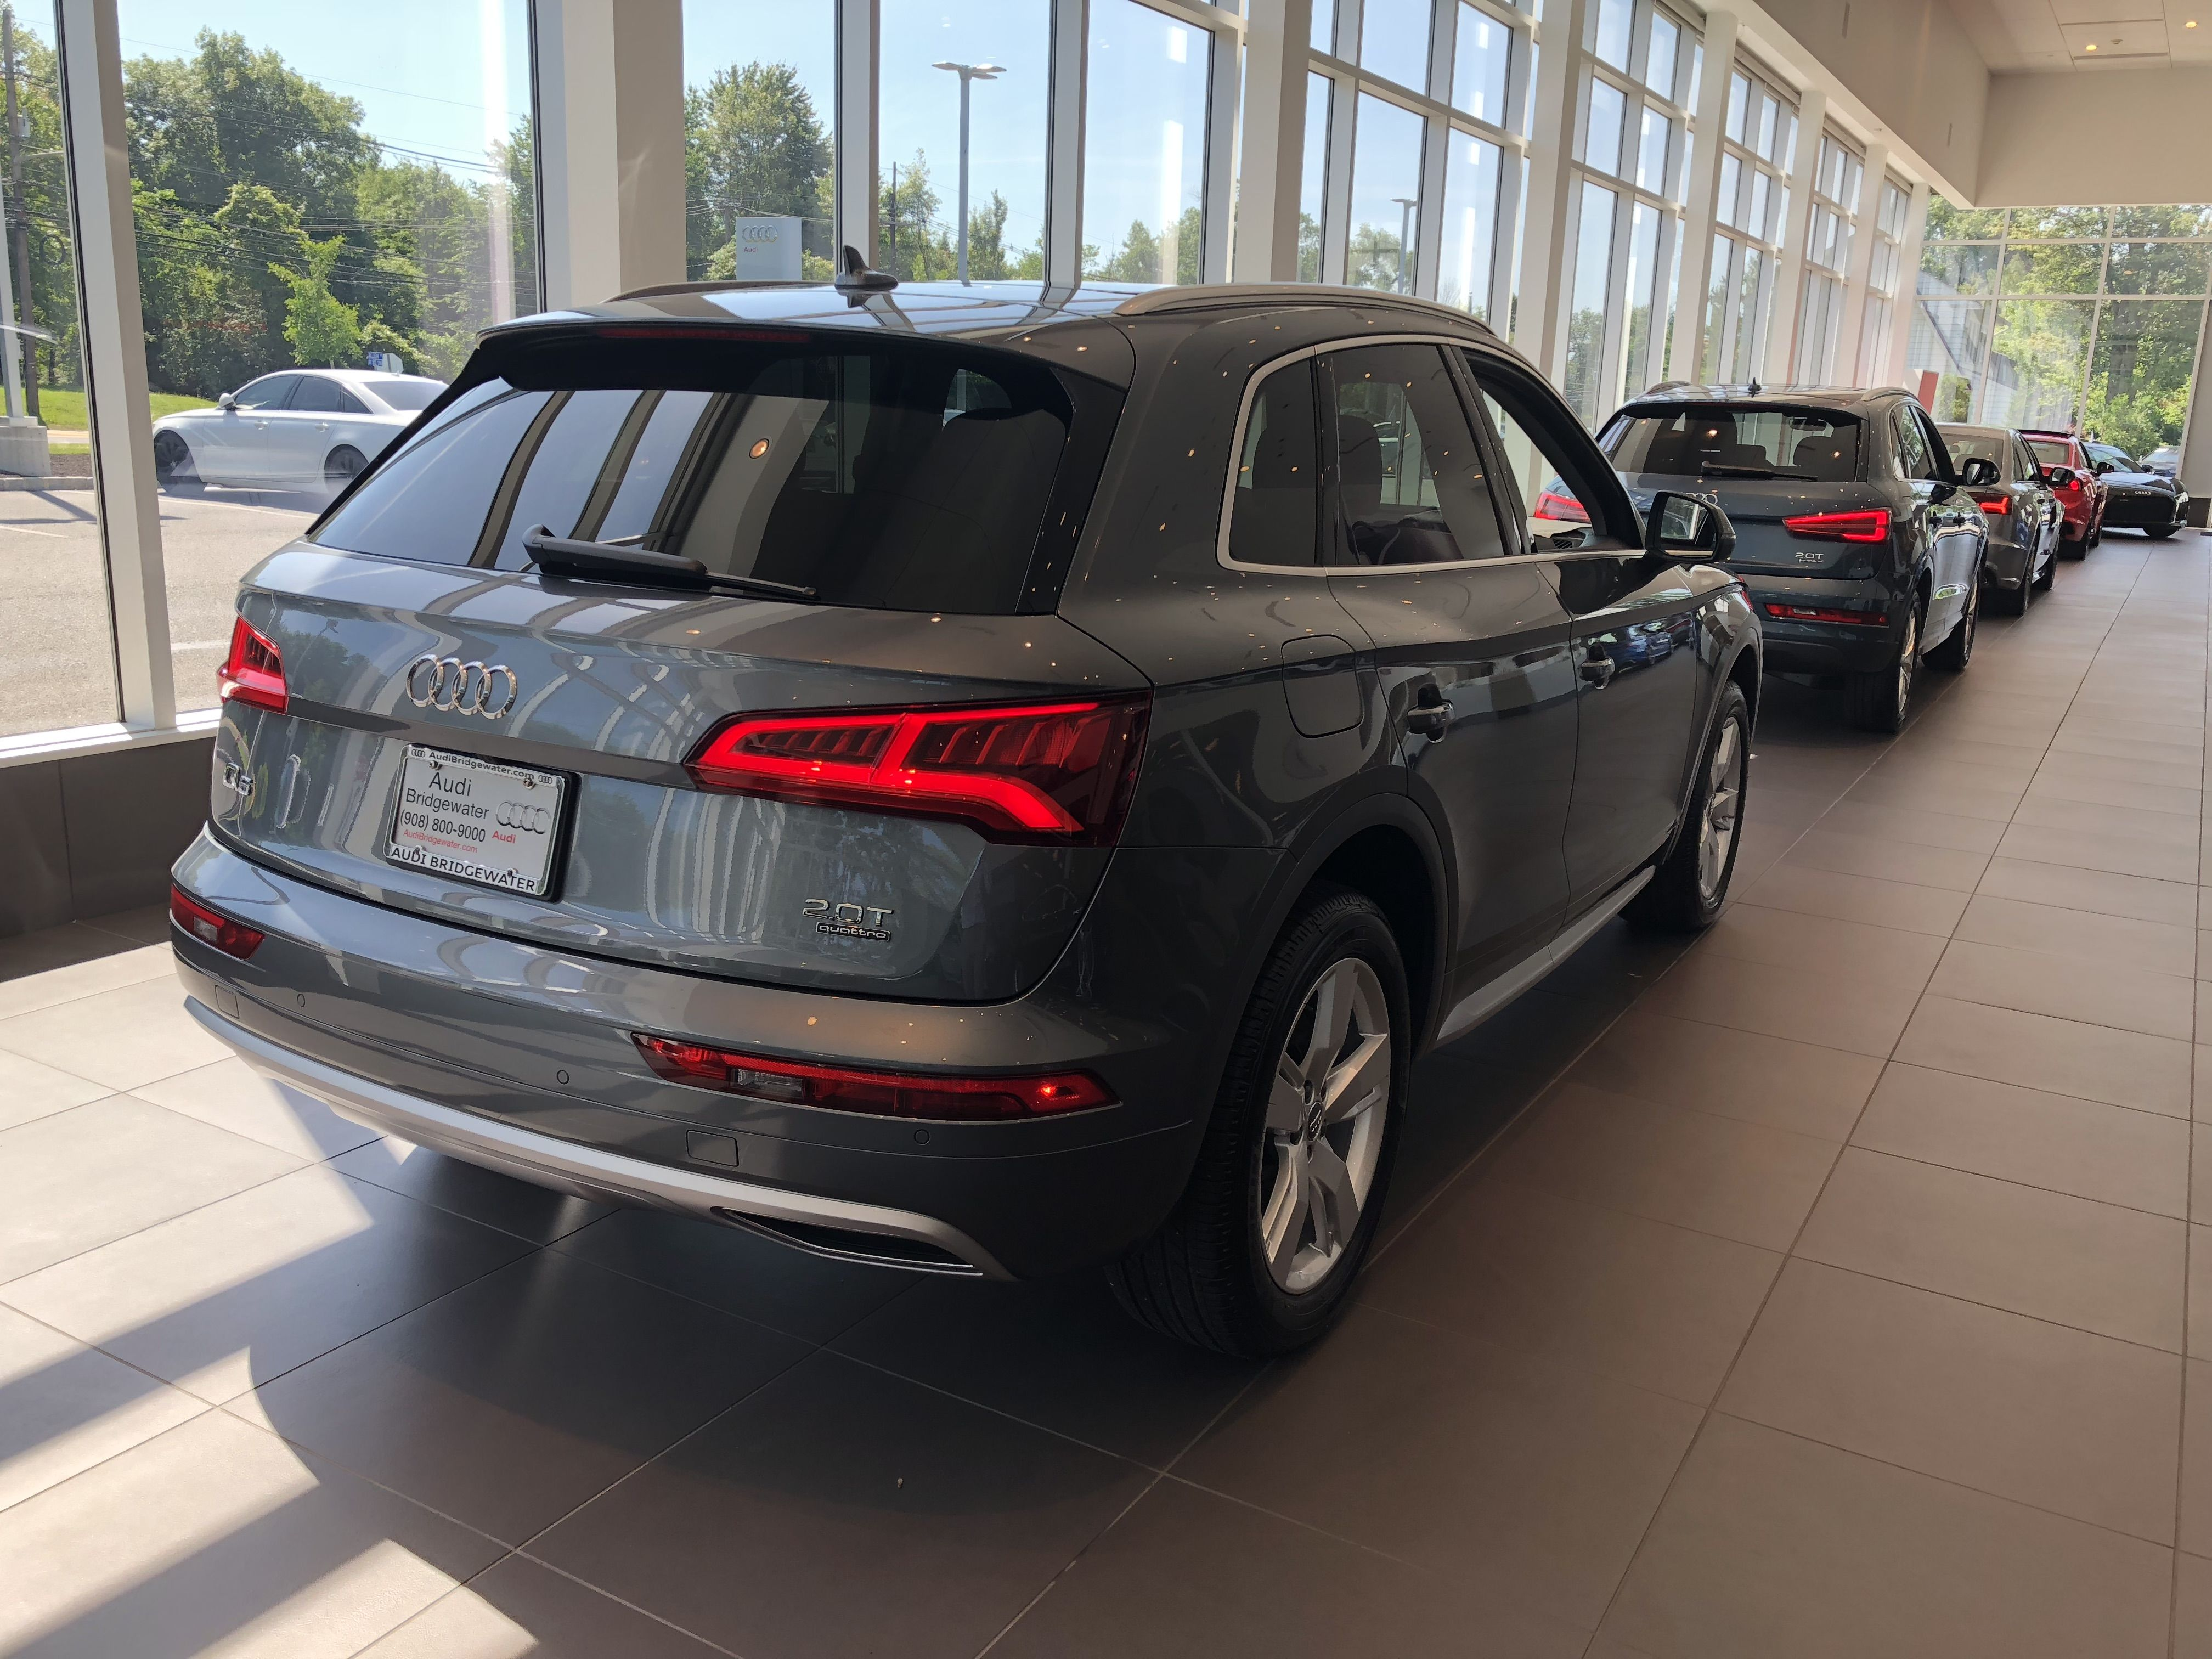 Rear Angled View Of The 2018 Audi Q5 In Monsoon Grey Metallic